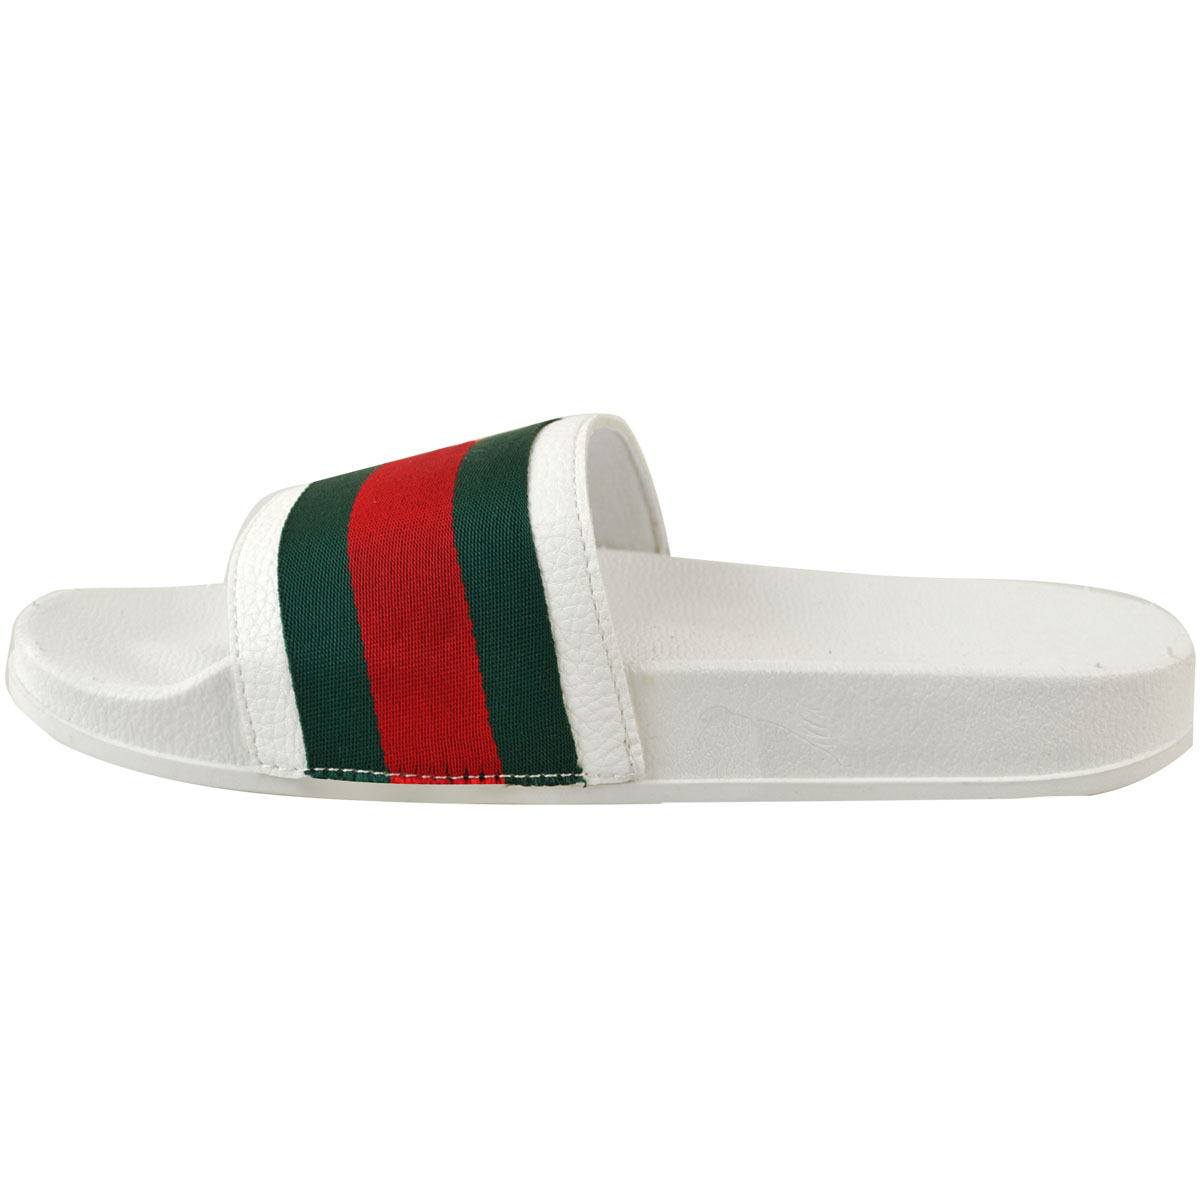 Womens-Ladies-Flat-Striped-Sliders-Summer-Sandals-Slides-Mules-Slippers-Size thumbnail 11